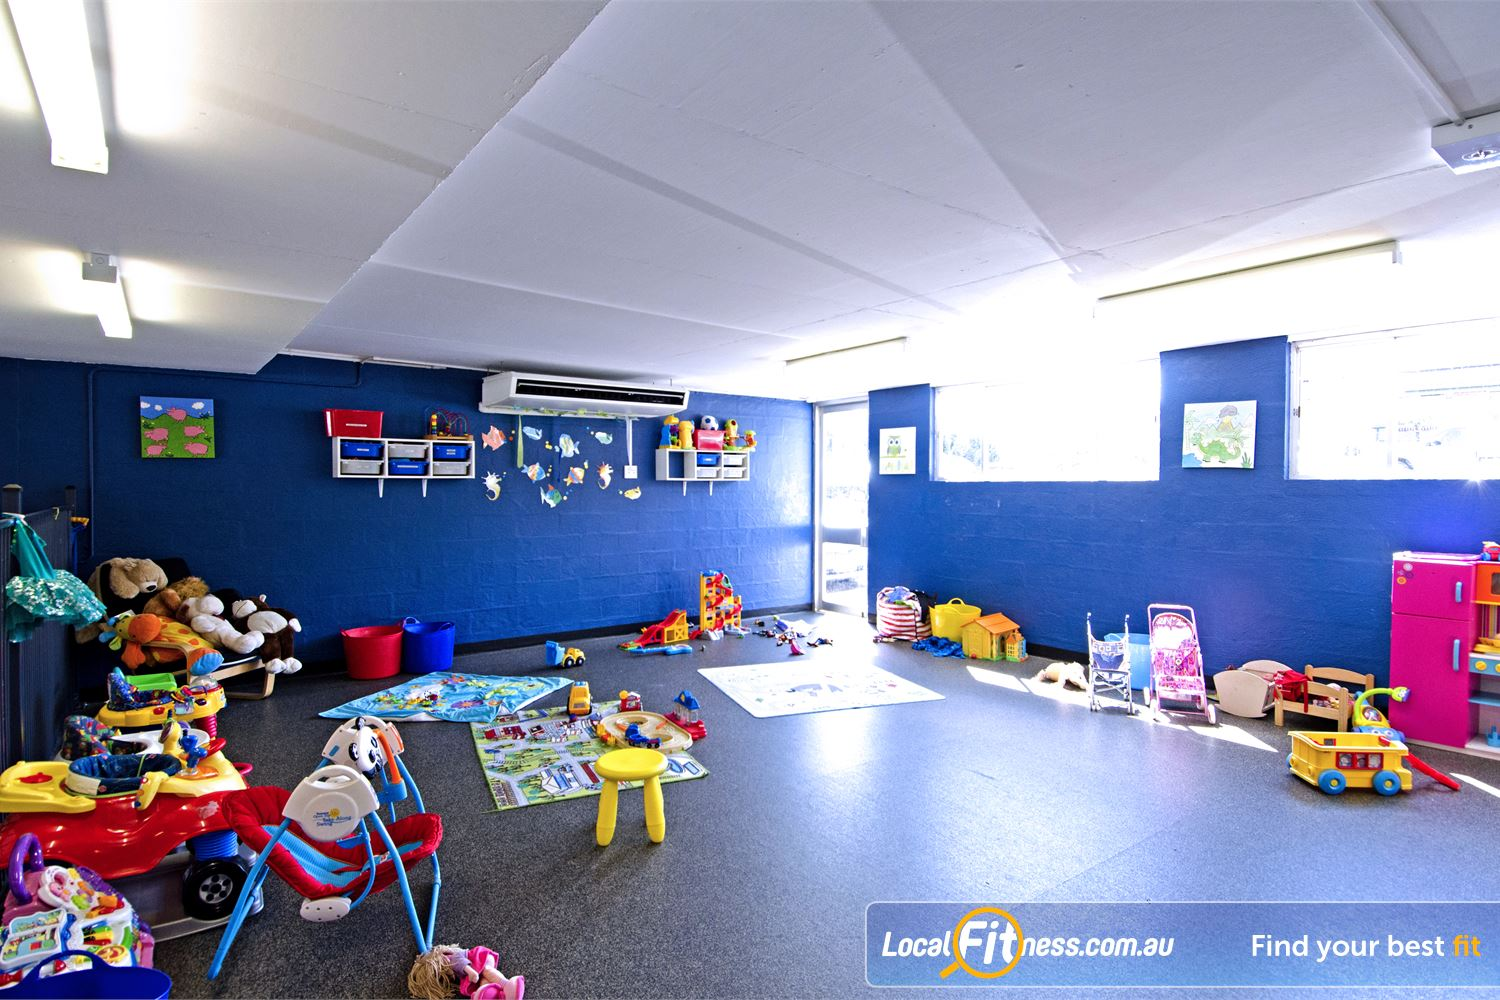 Goodlife Health Clubs Graceville Graceville child minding is part of our family friendly gym environment.